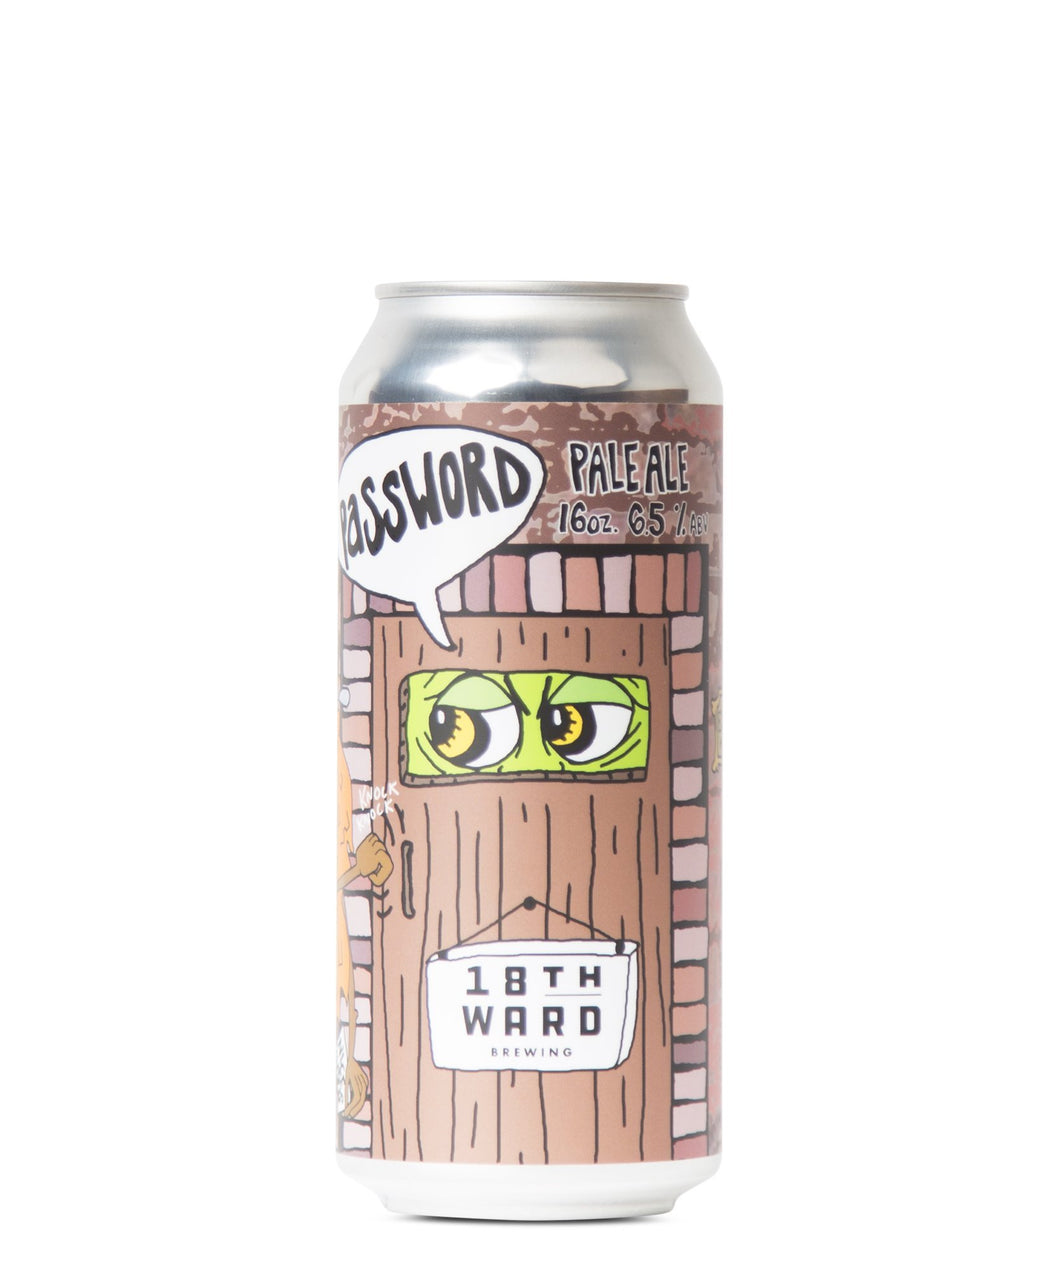 Password Pale Ale - 18th Ward Brewing Delivered By TapRm